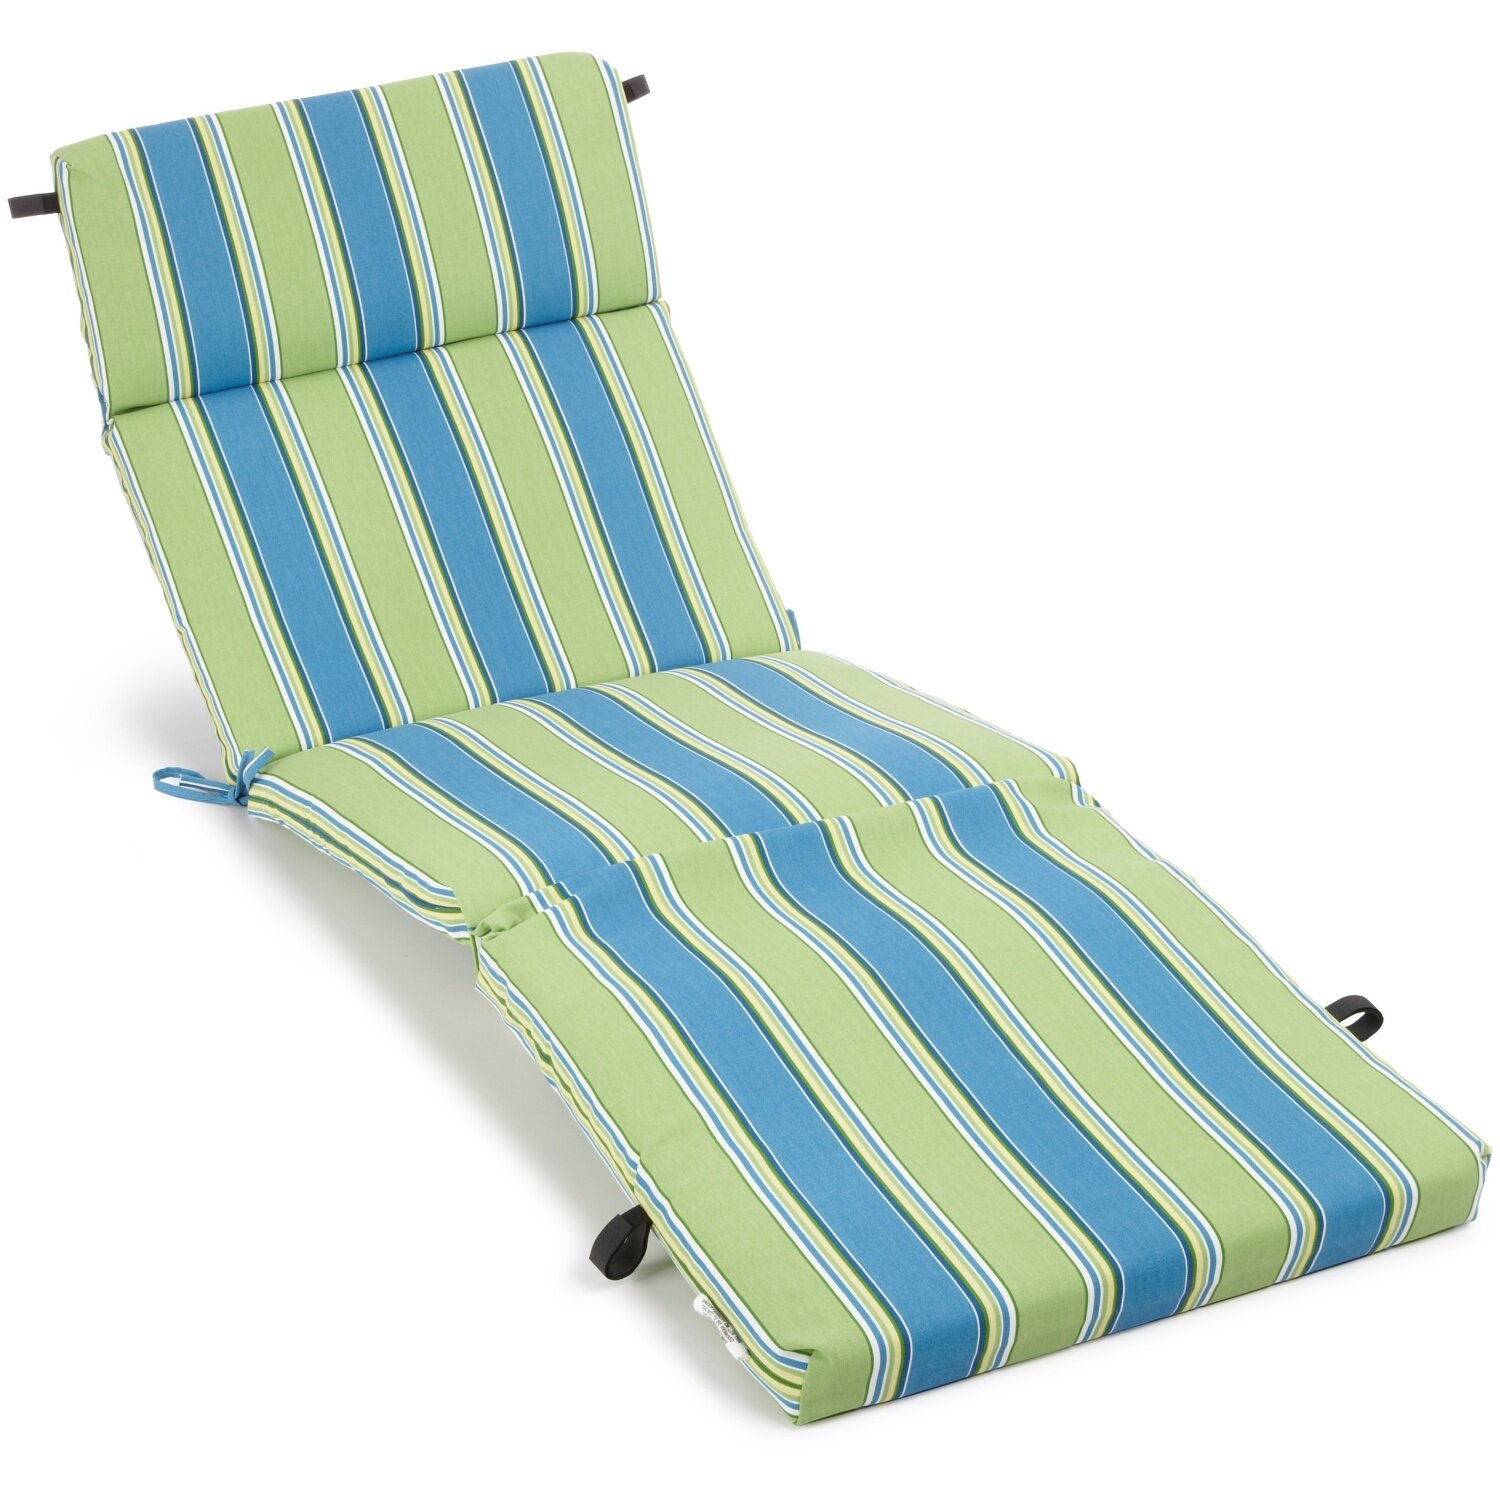 Blazing needles haliwall outdoor chaise lounge cushion for Chaise cushions on sale